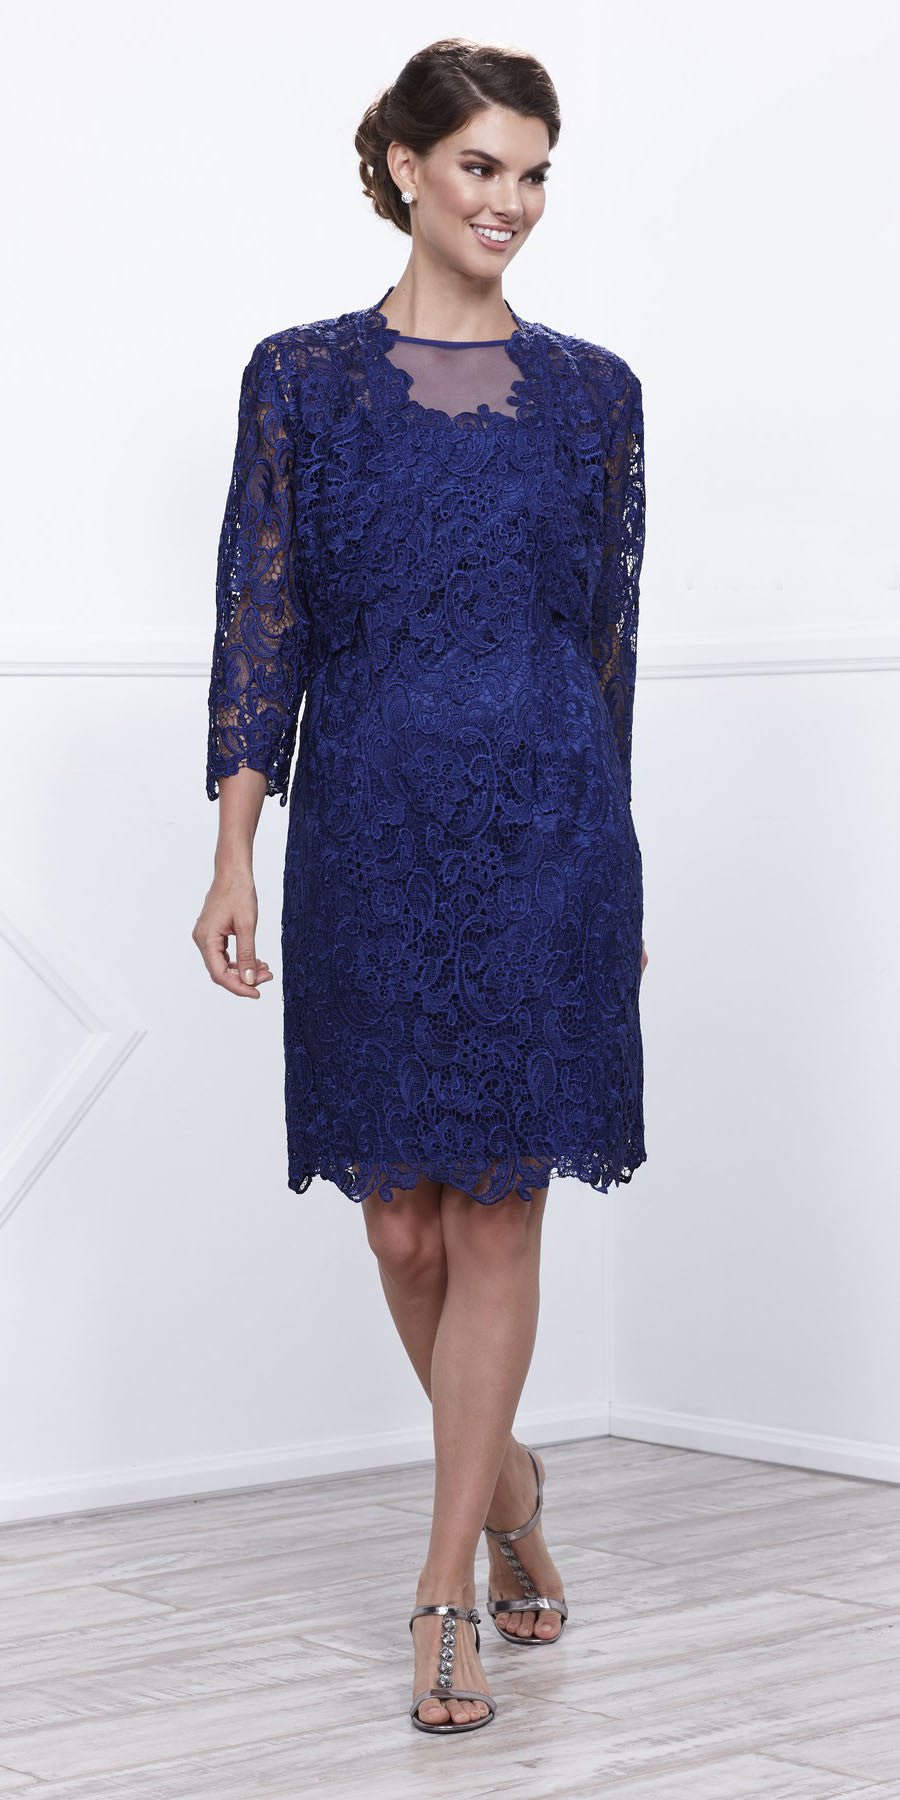 Knee Length Cruise Dress Lace Royal Blue Includes Lace Jacket